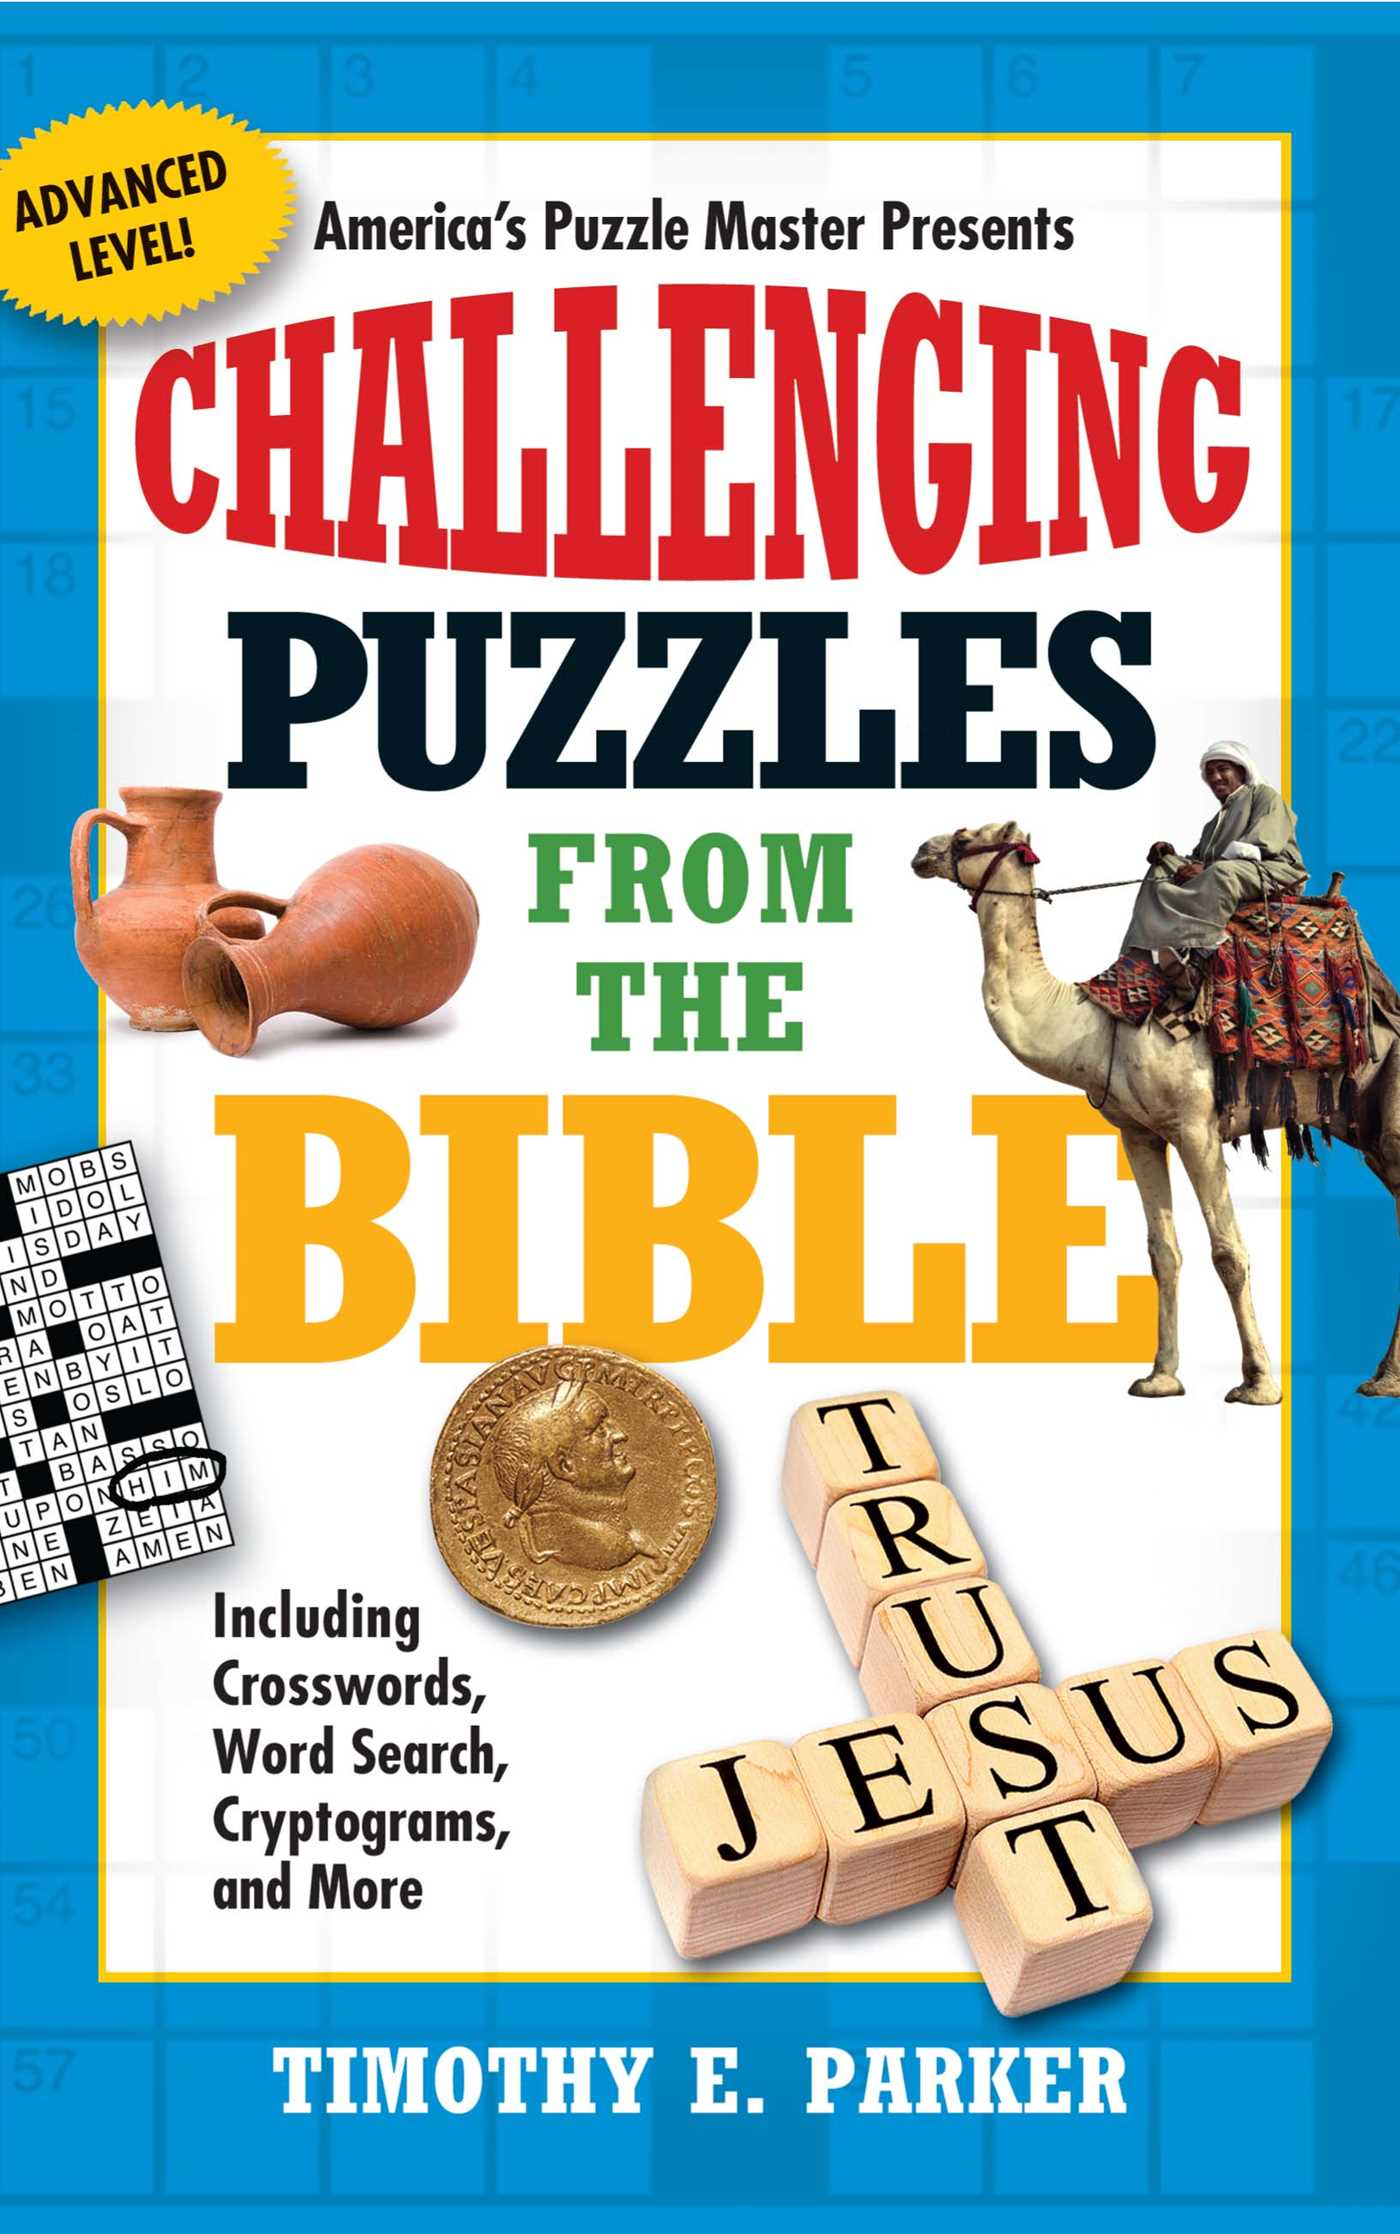 Challenging puzzles from the bible 9781439192290 hr